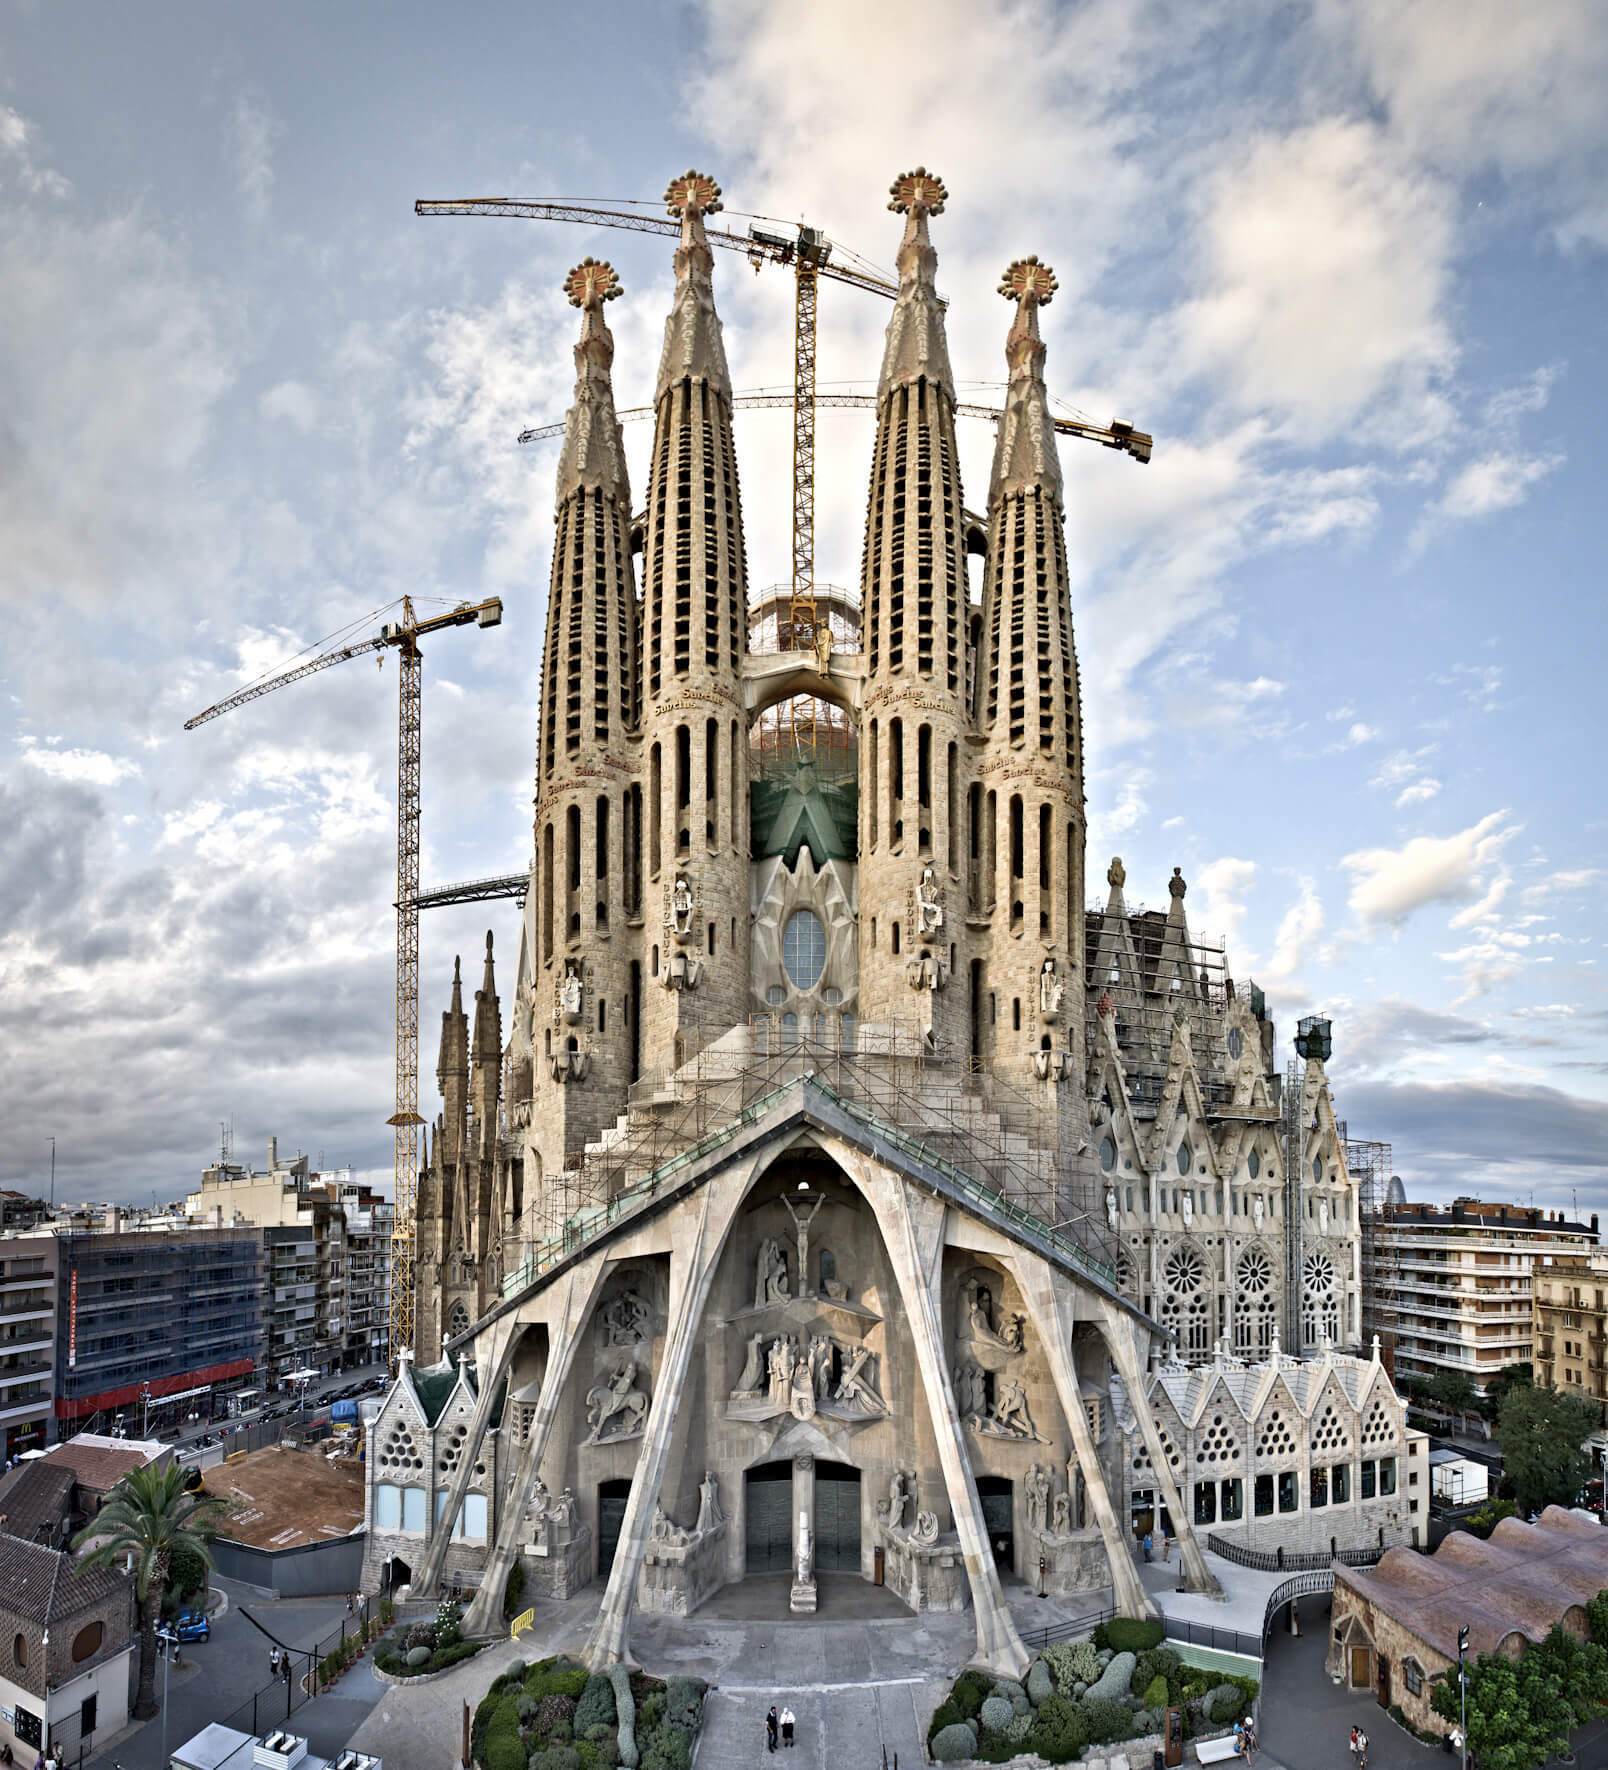 15 Gaudi Buildings In Barcelona That Will Amaze You